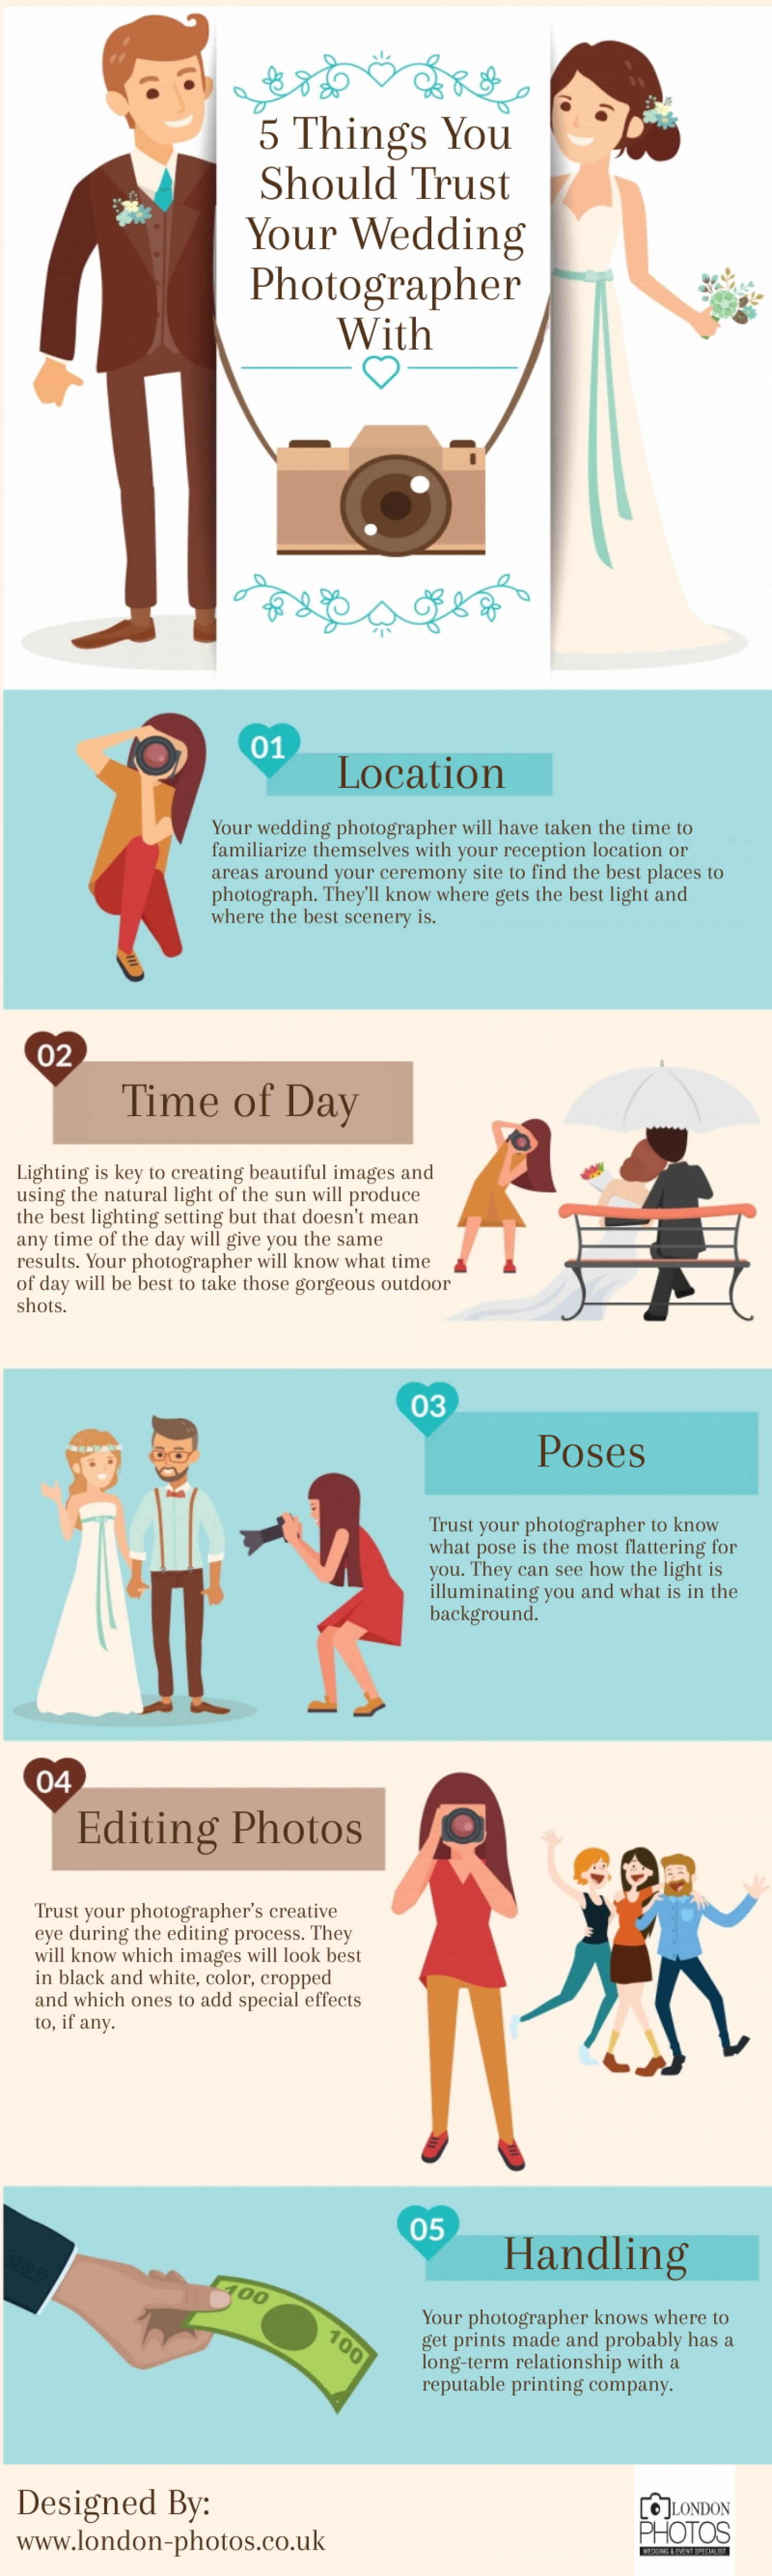 5 Things You Should Trust Your Wedding Photographer With Infographic